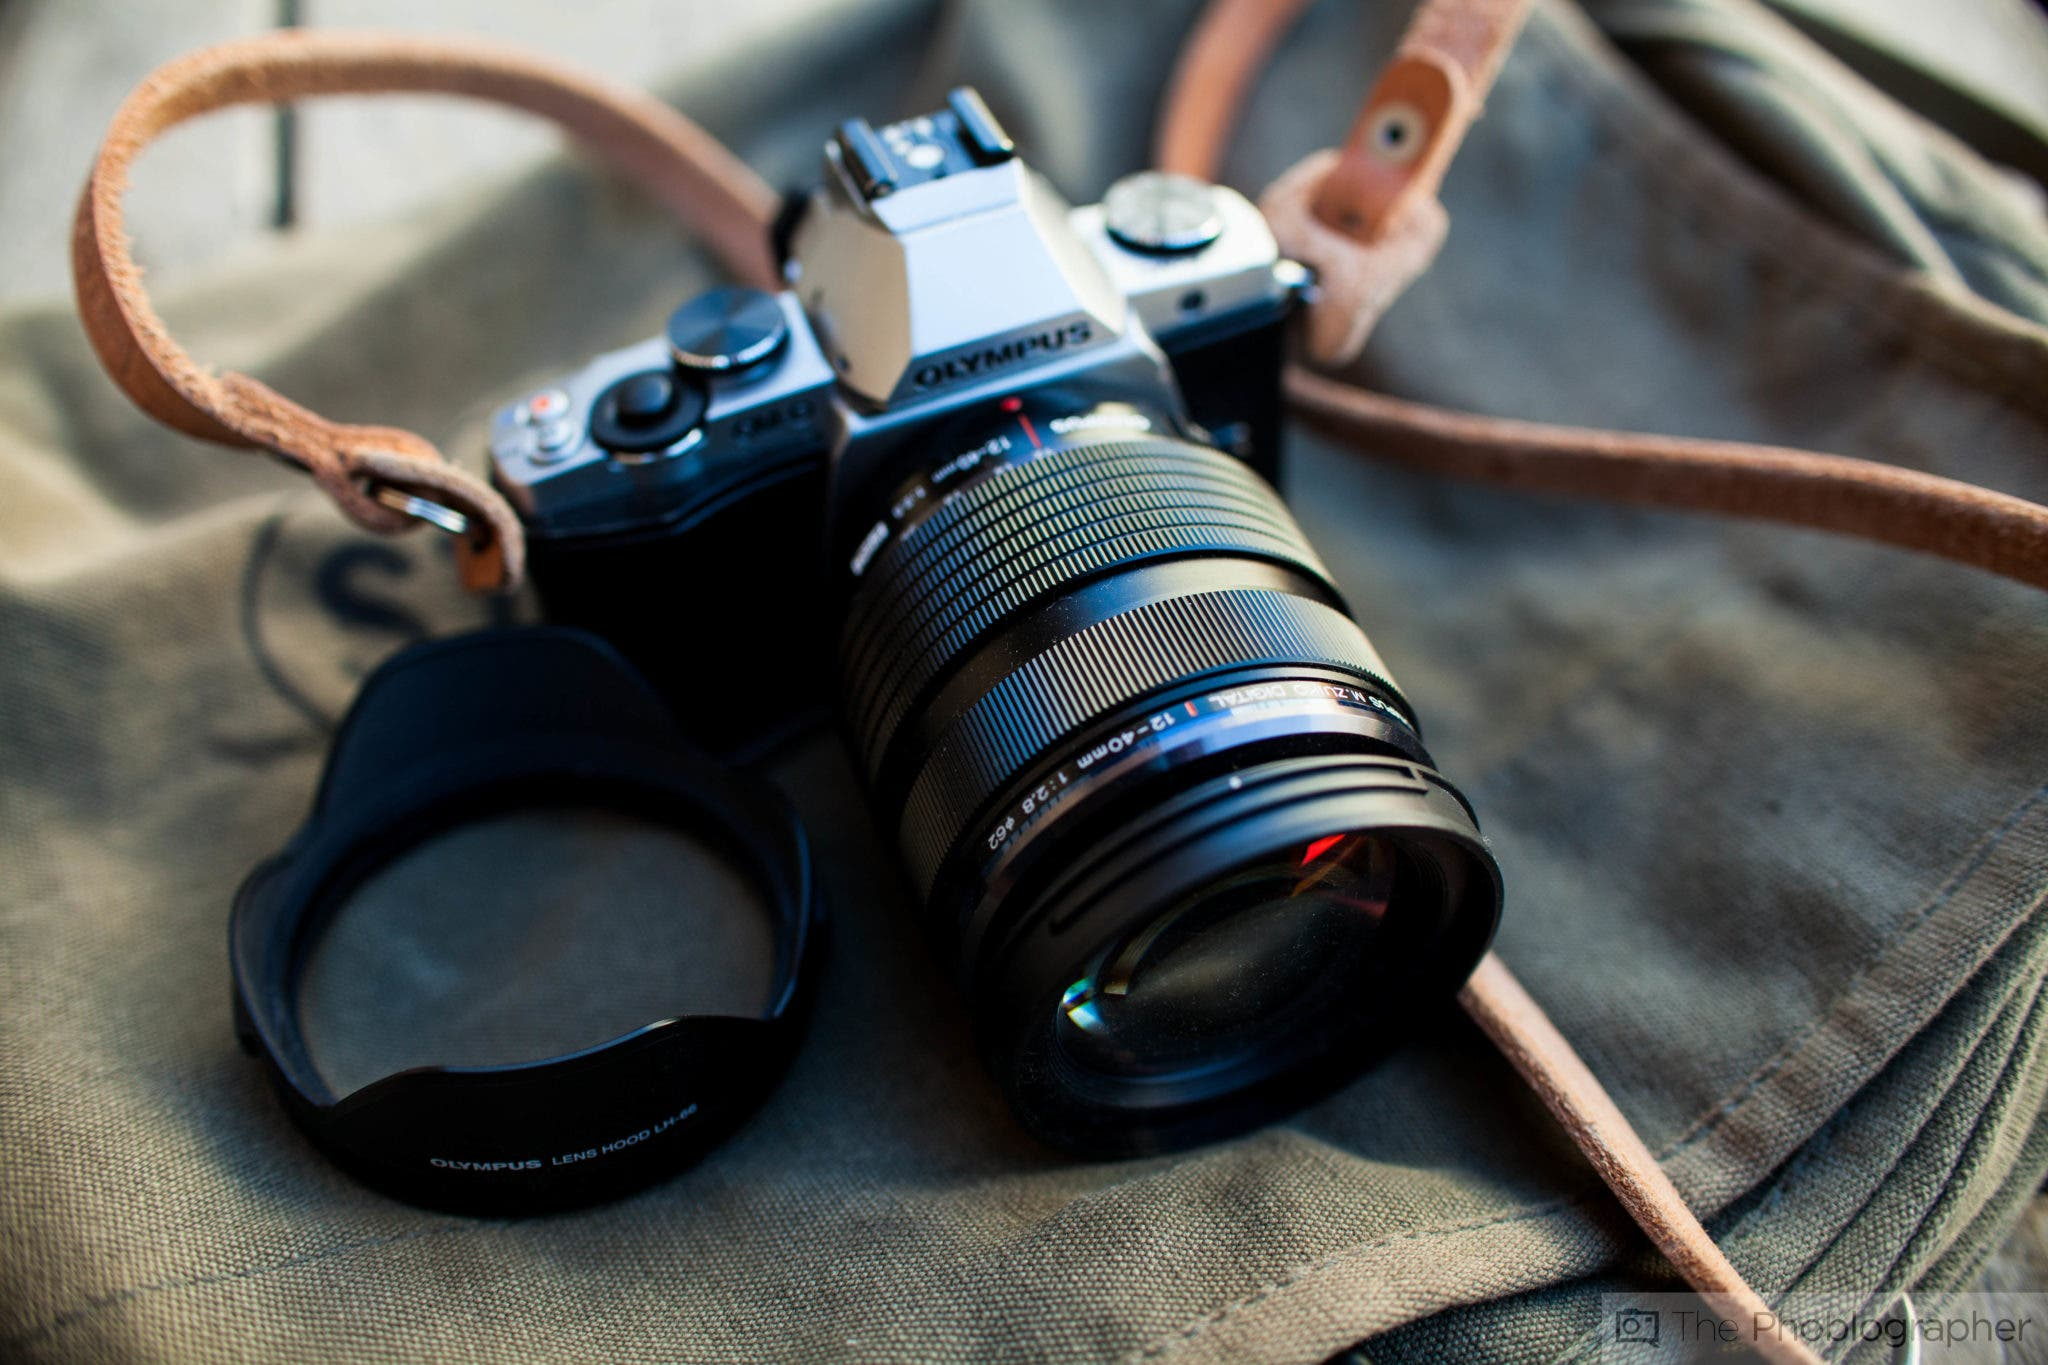 On Sale: Stimulate Your Creativity (and Save) With These Olympus Lenses